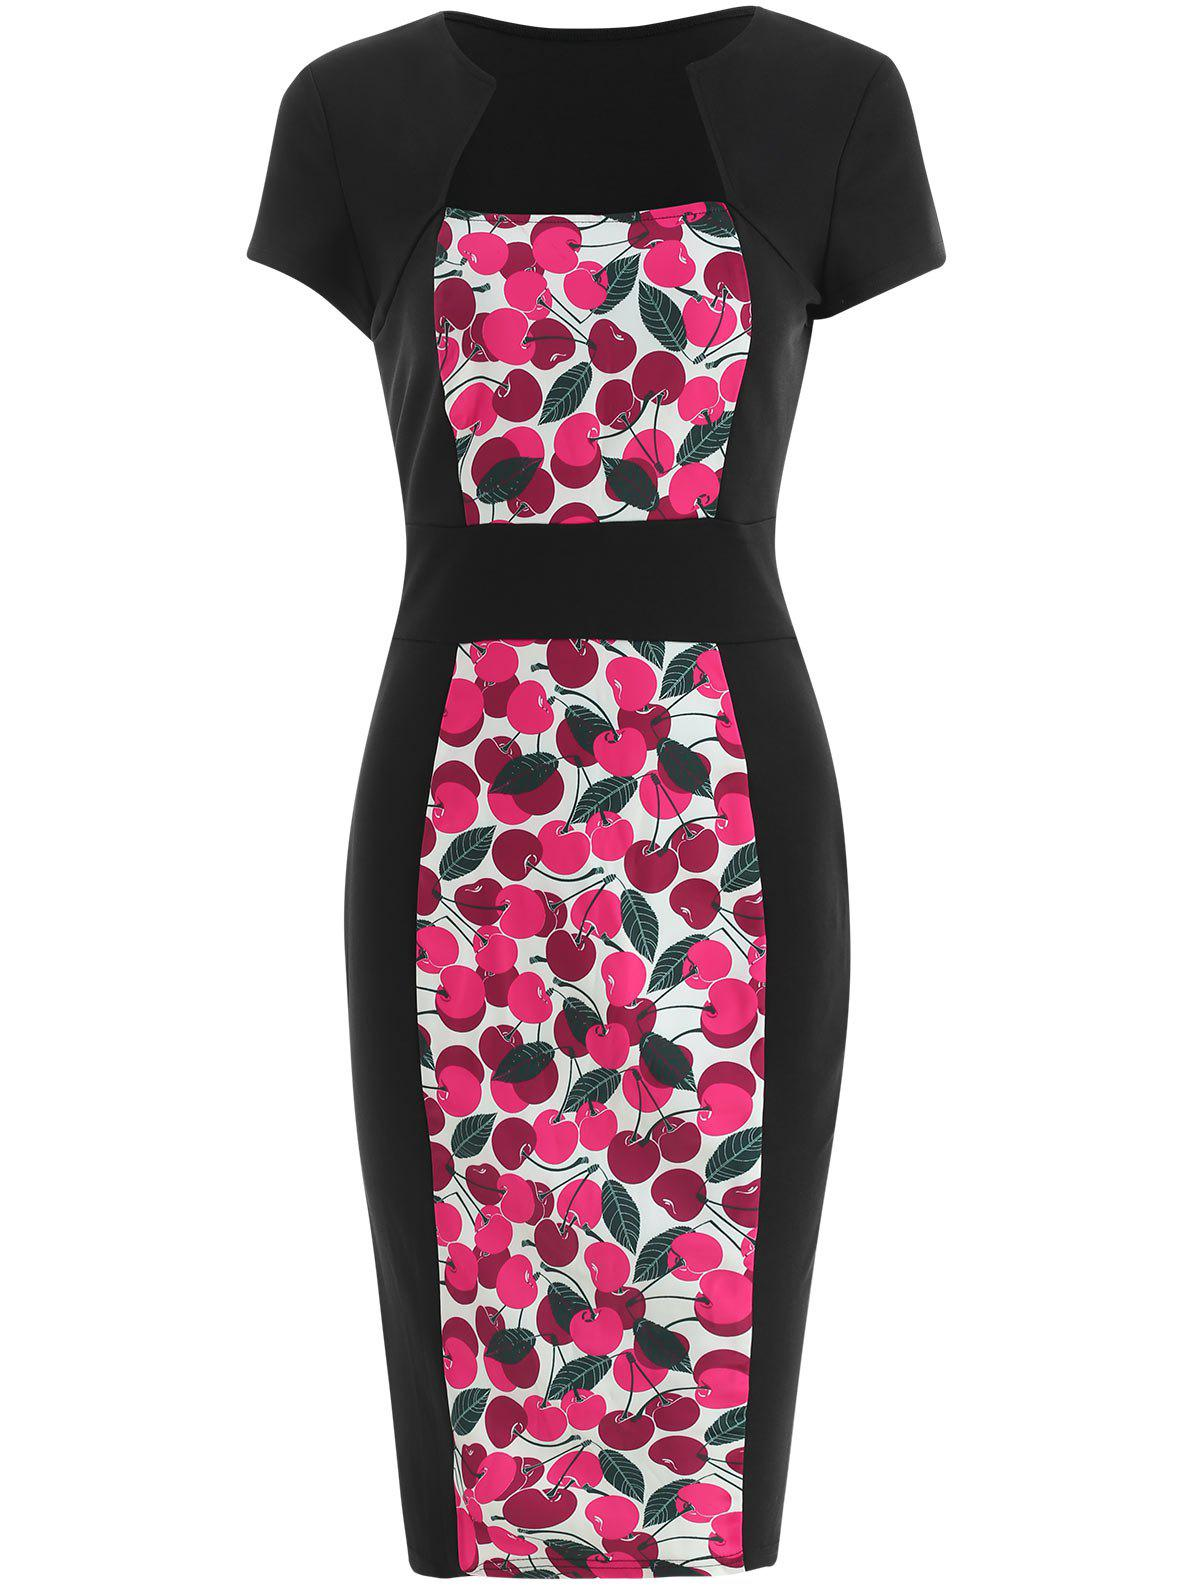 Store Cherry Print Cap Sleeve Bodycon Dress